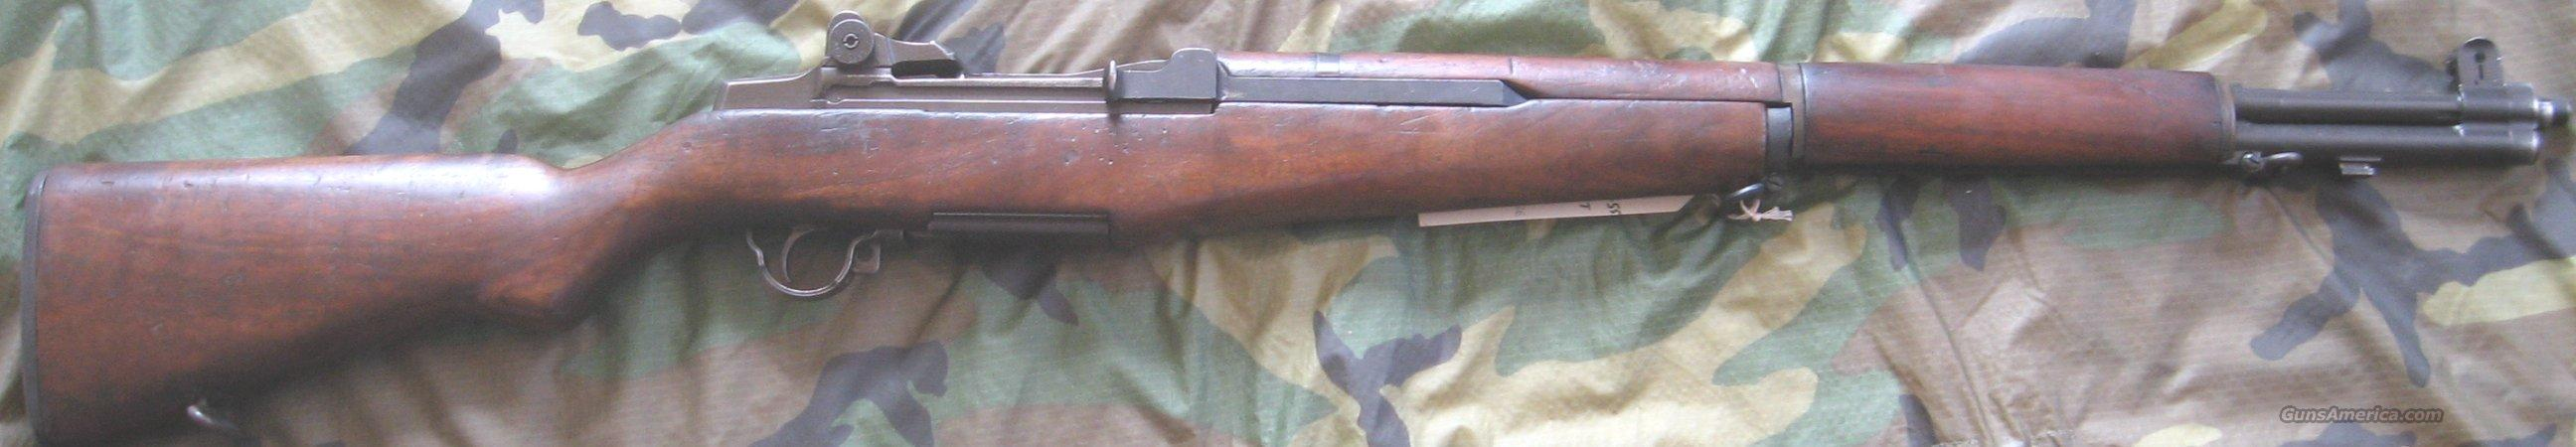 H&R Documented Garand Rifle  Guns > Rifles > Military Misc. Rifles US > M1 Garand